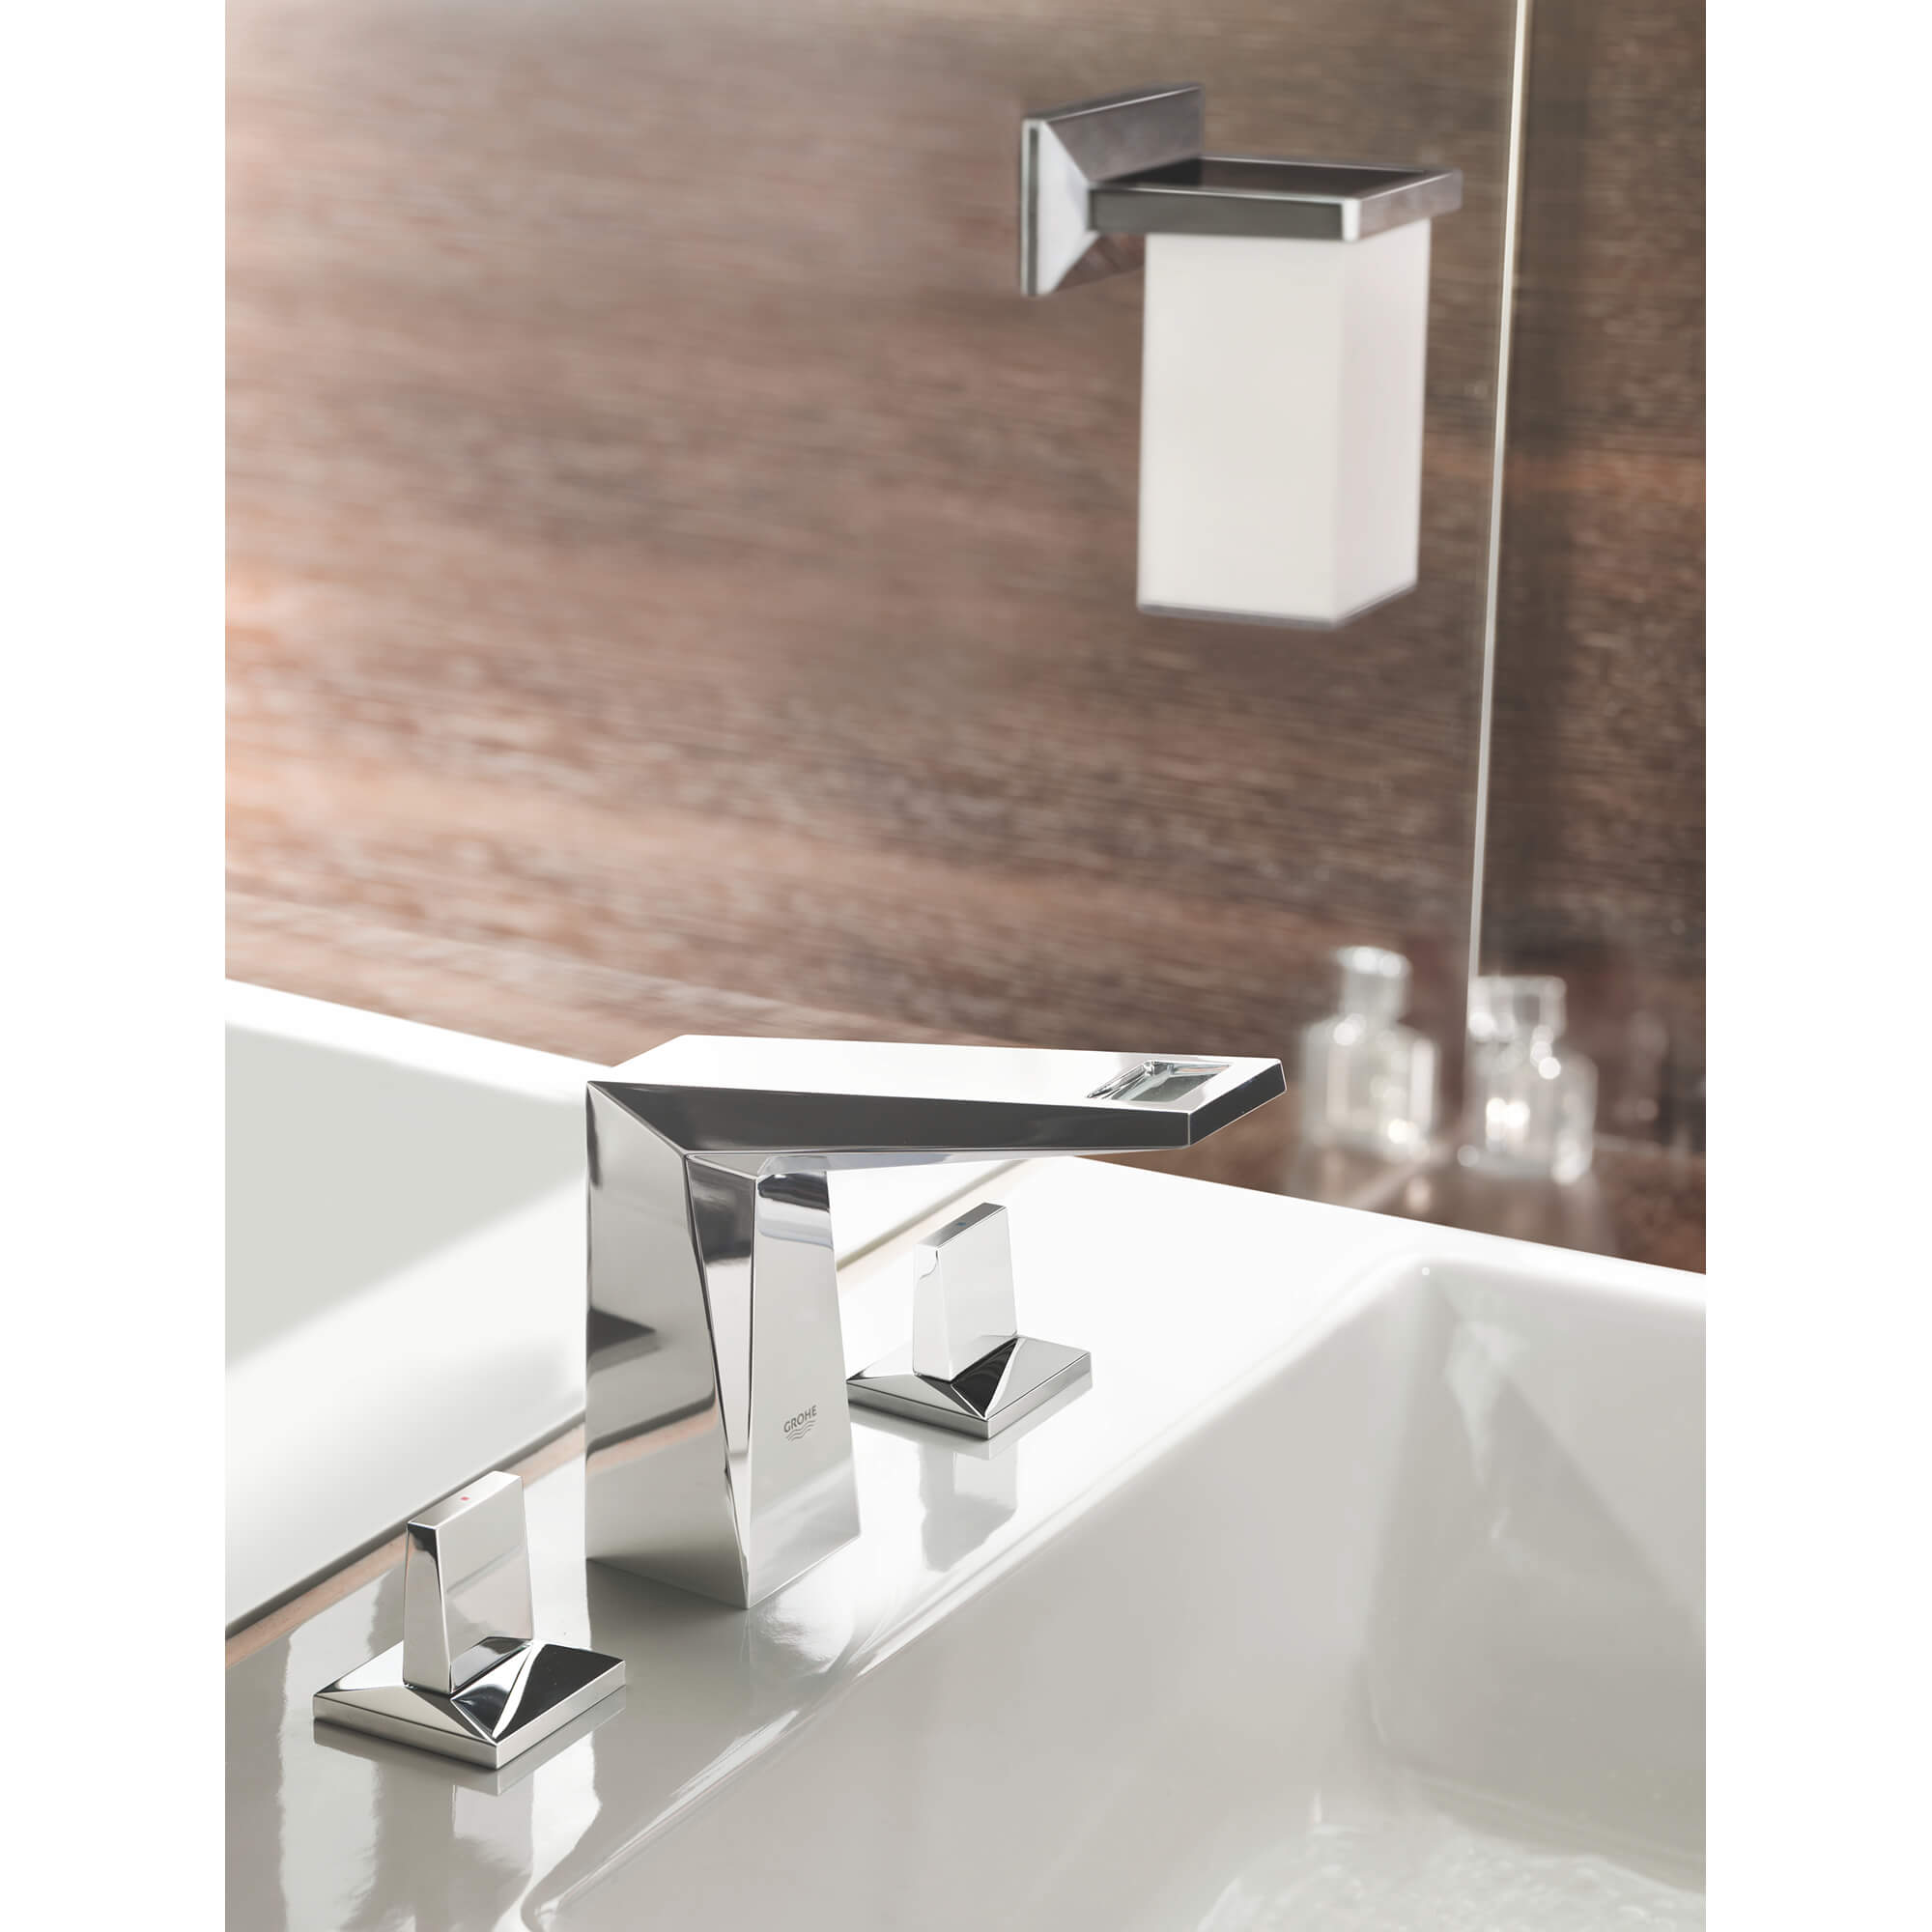 Toothbrush Holder with Tumbler GROHE CHROME